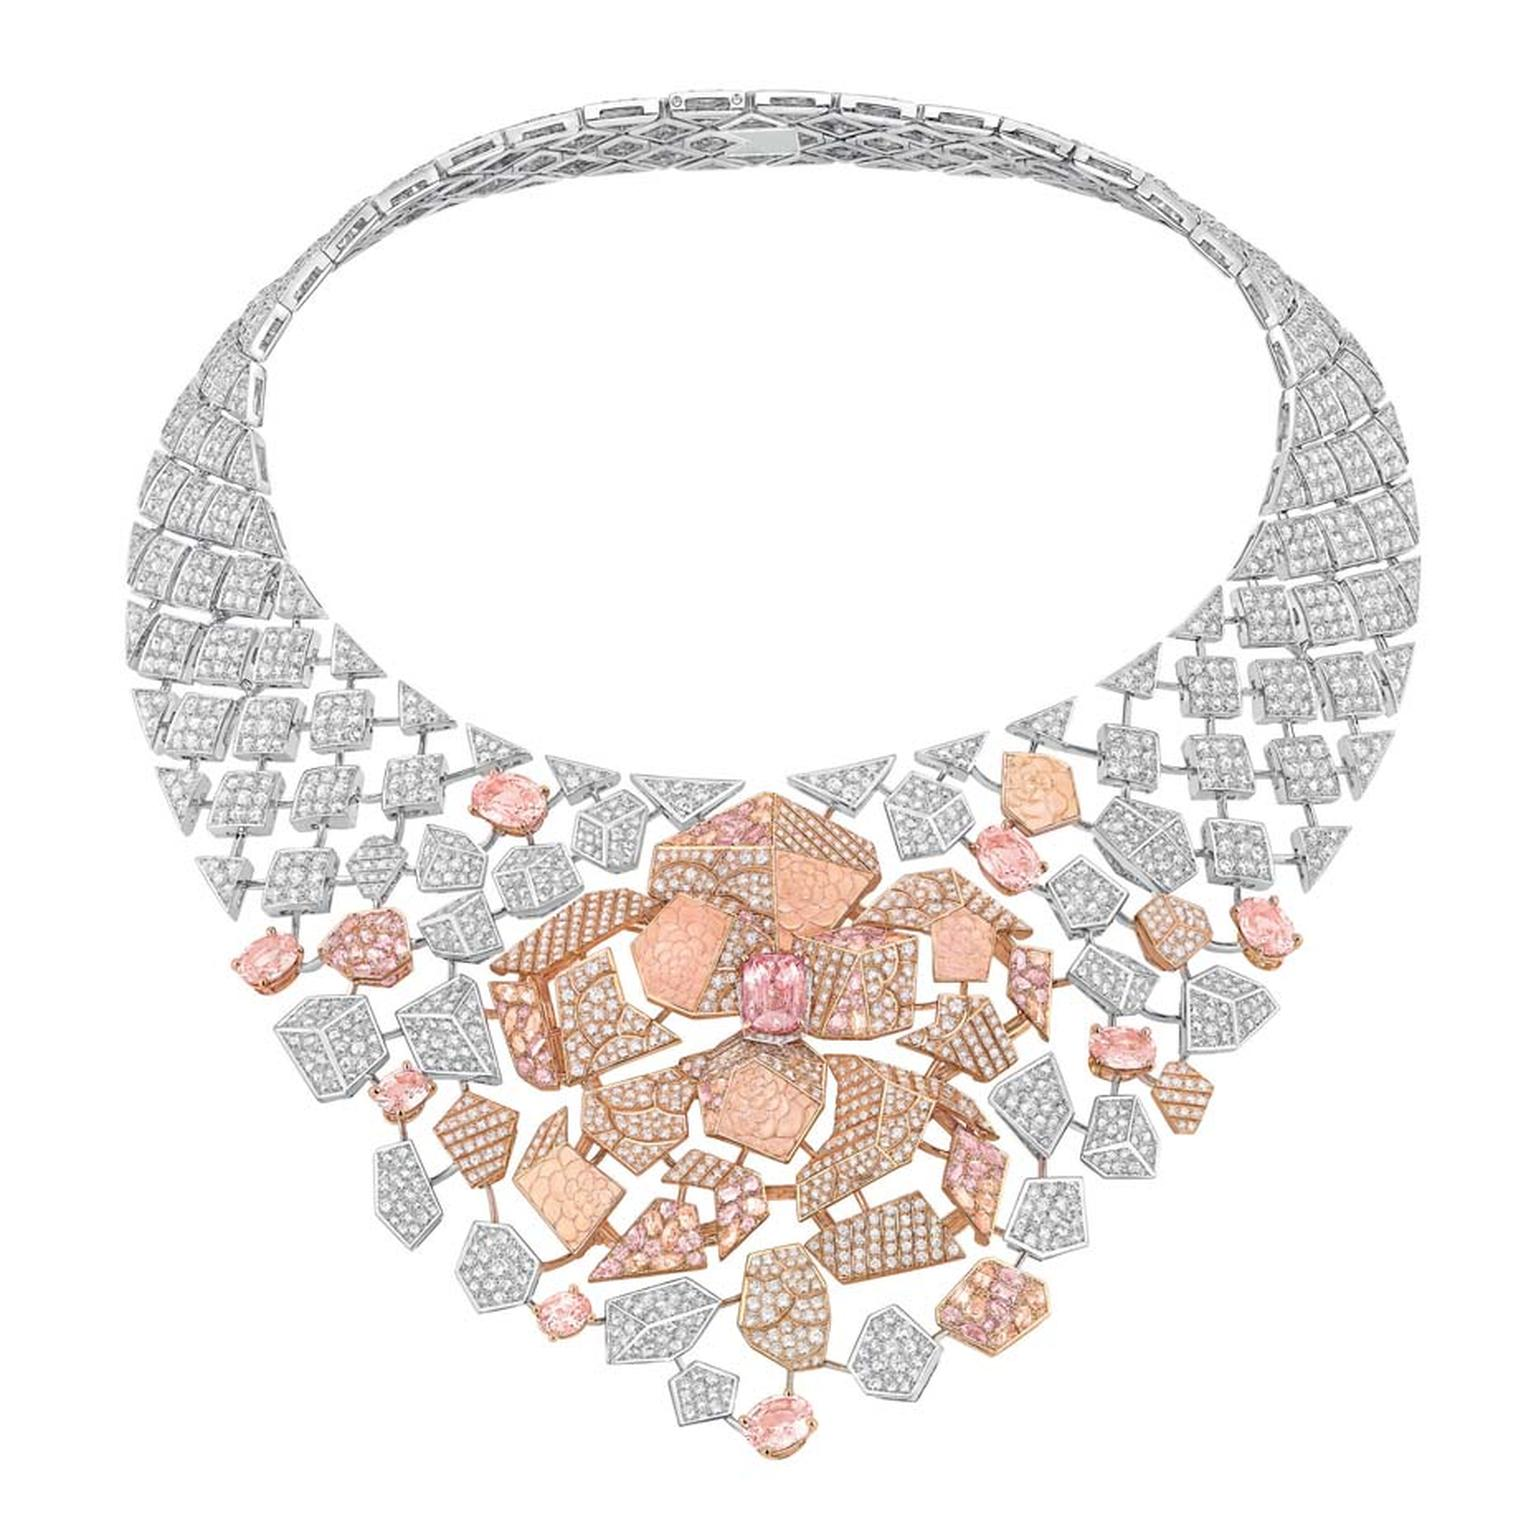 Chanel Café Society Sunset necklace set with padparadscha sapphires